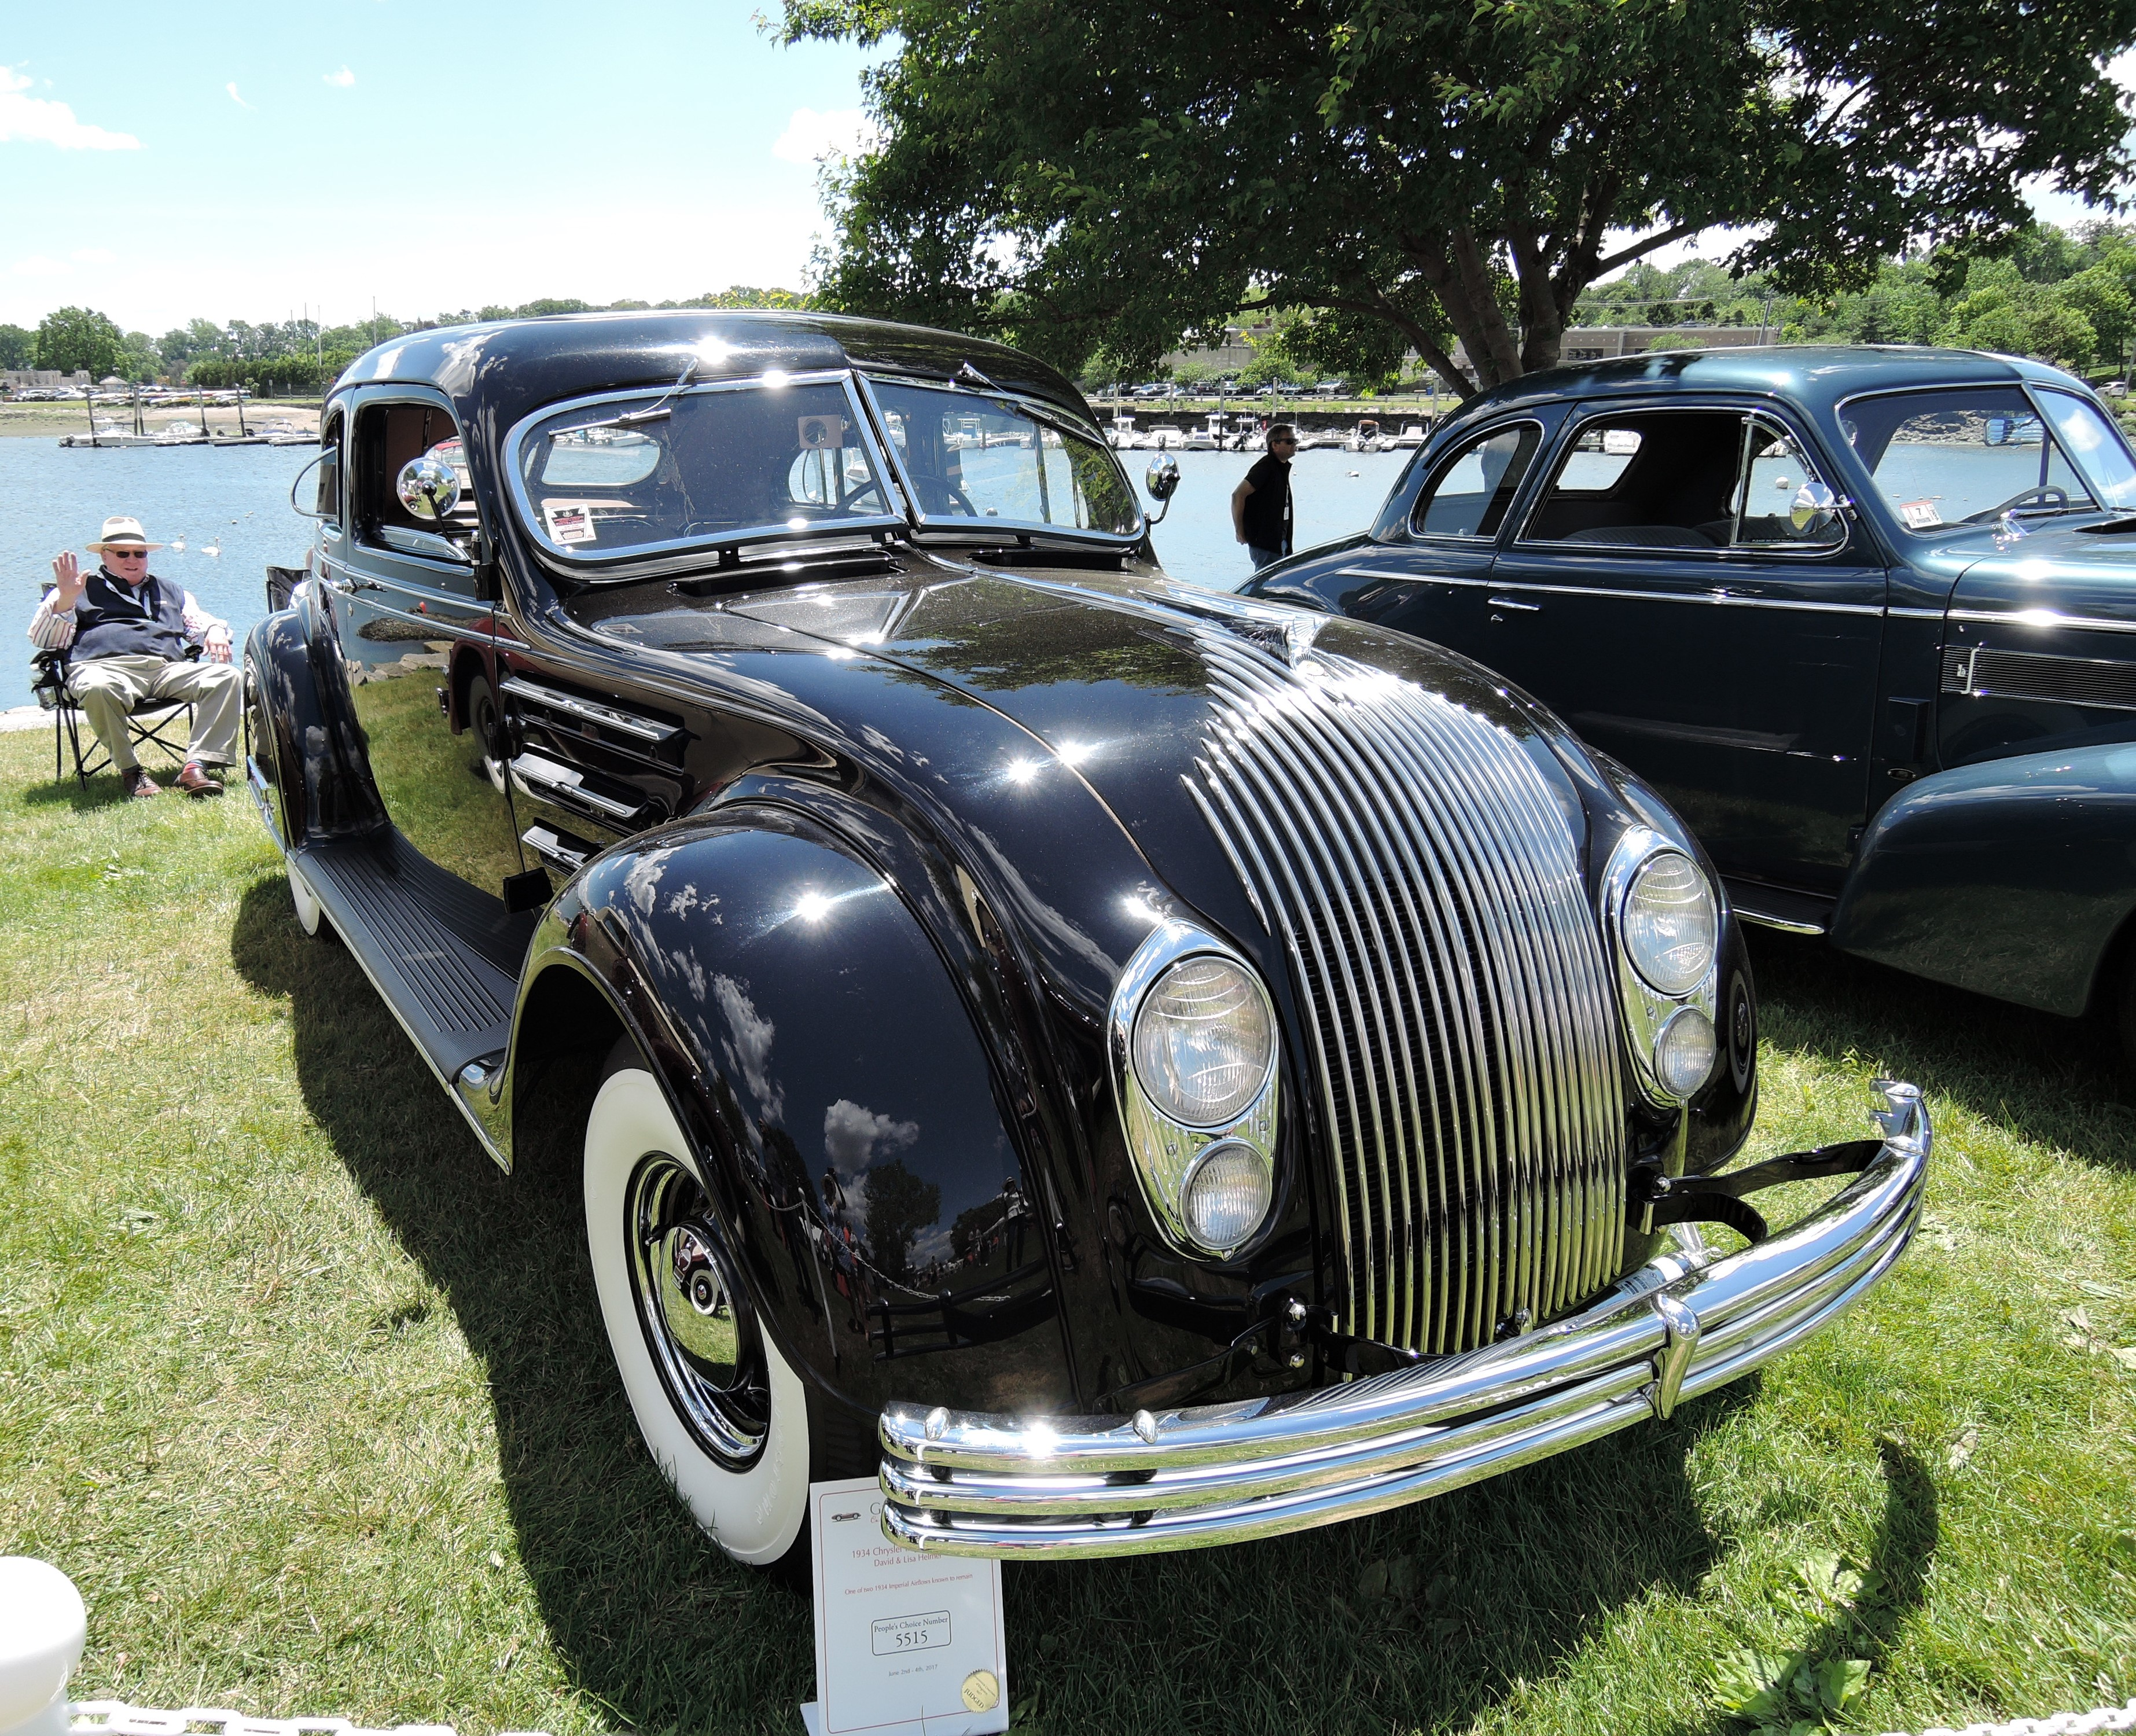 black 1934 Chrysler Imperial Airlow Coupe - Greenwich Concours d'Elegance 2017